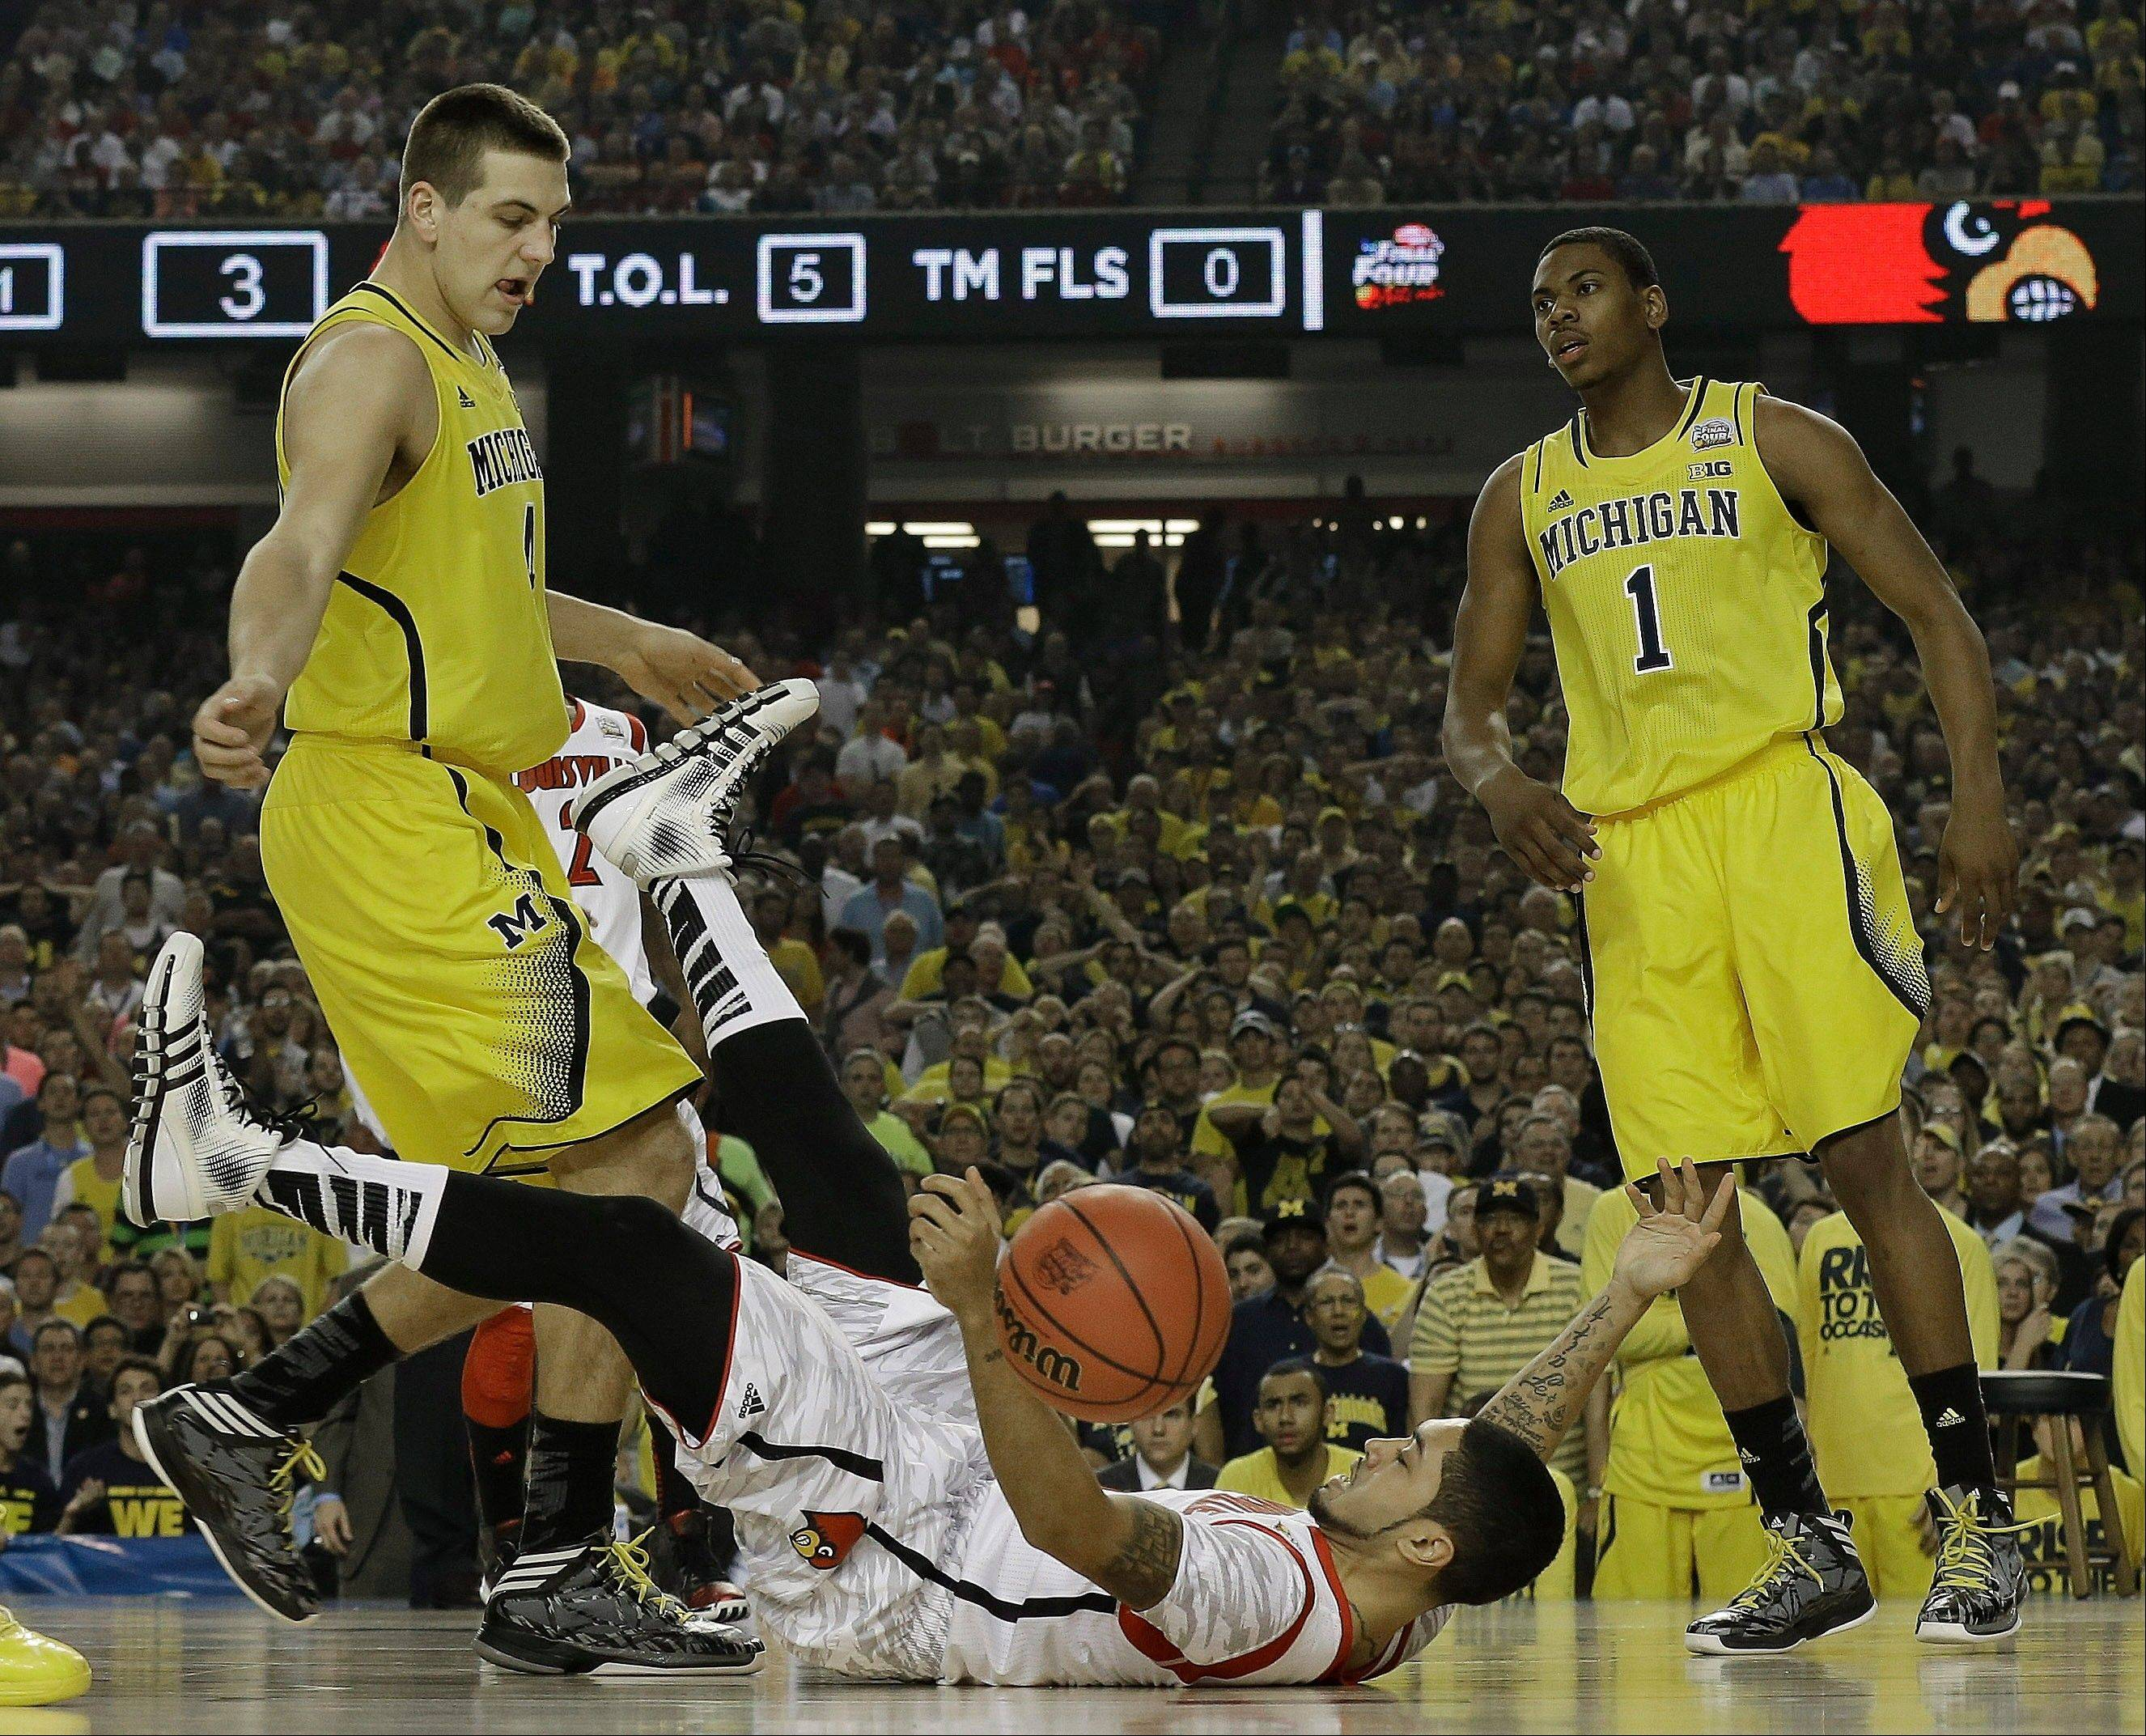 Louisville guard Peyton Siva (3) hits the court as Michigan forward Mitch McGary (4) and Michigan forward Glenn Robinson III (1) look on during the first half of the NCAA Final Four tournament college basketball championship game Monday, April 8, 2013, in Atlanta.